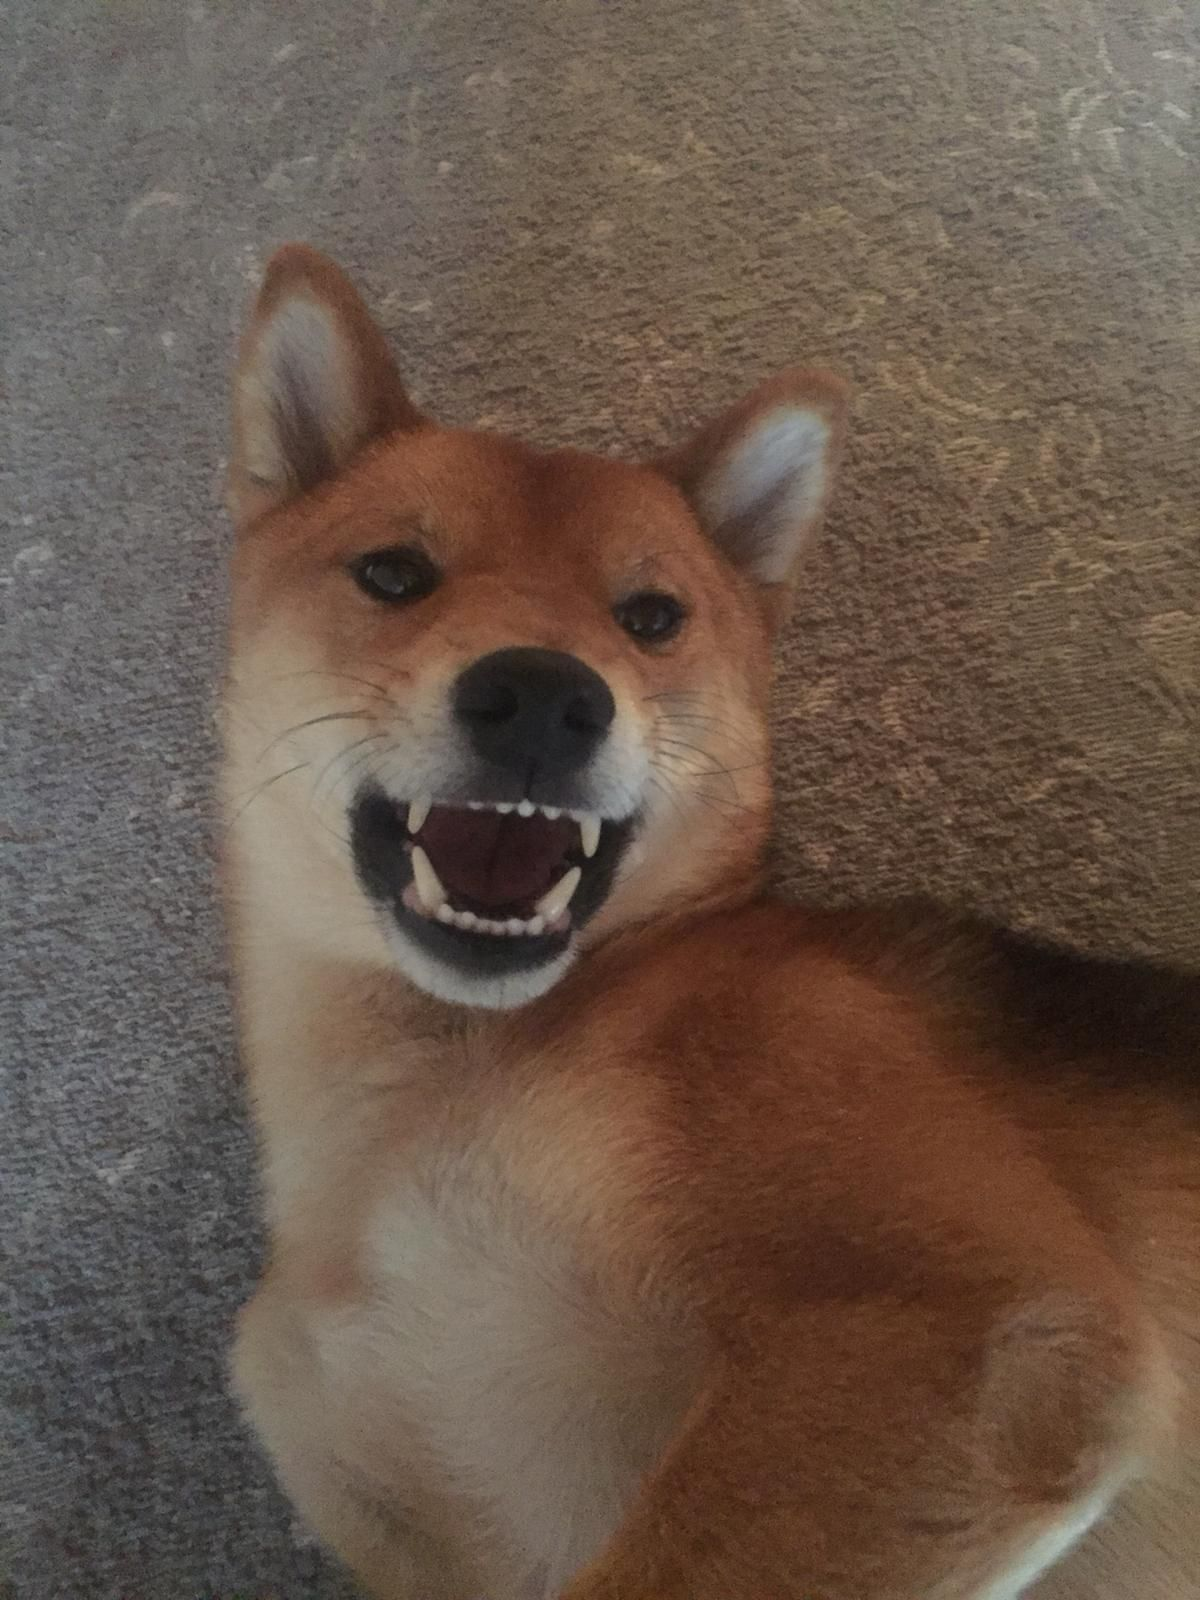 Angry Shiba Please Donate Us Hello There Bright People Are You Doglover Or Have You Any Pretty Dogs I Think You Love A Pup Shiba Dog Lovers Cat Store